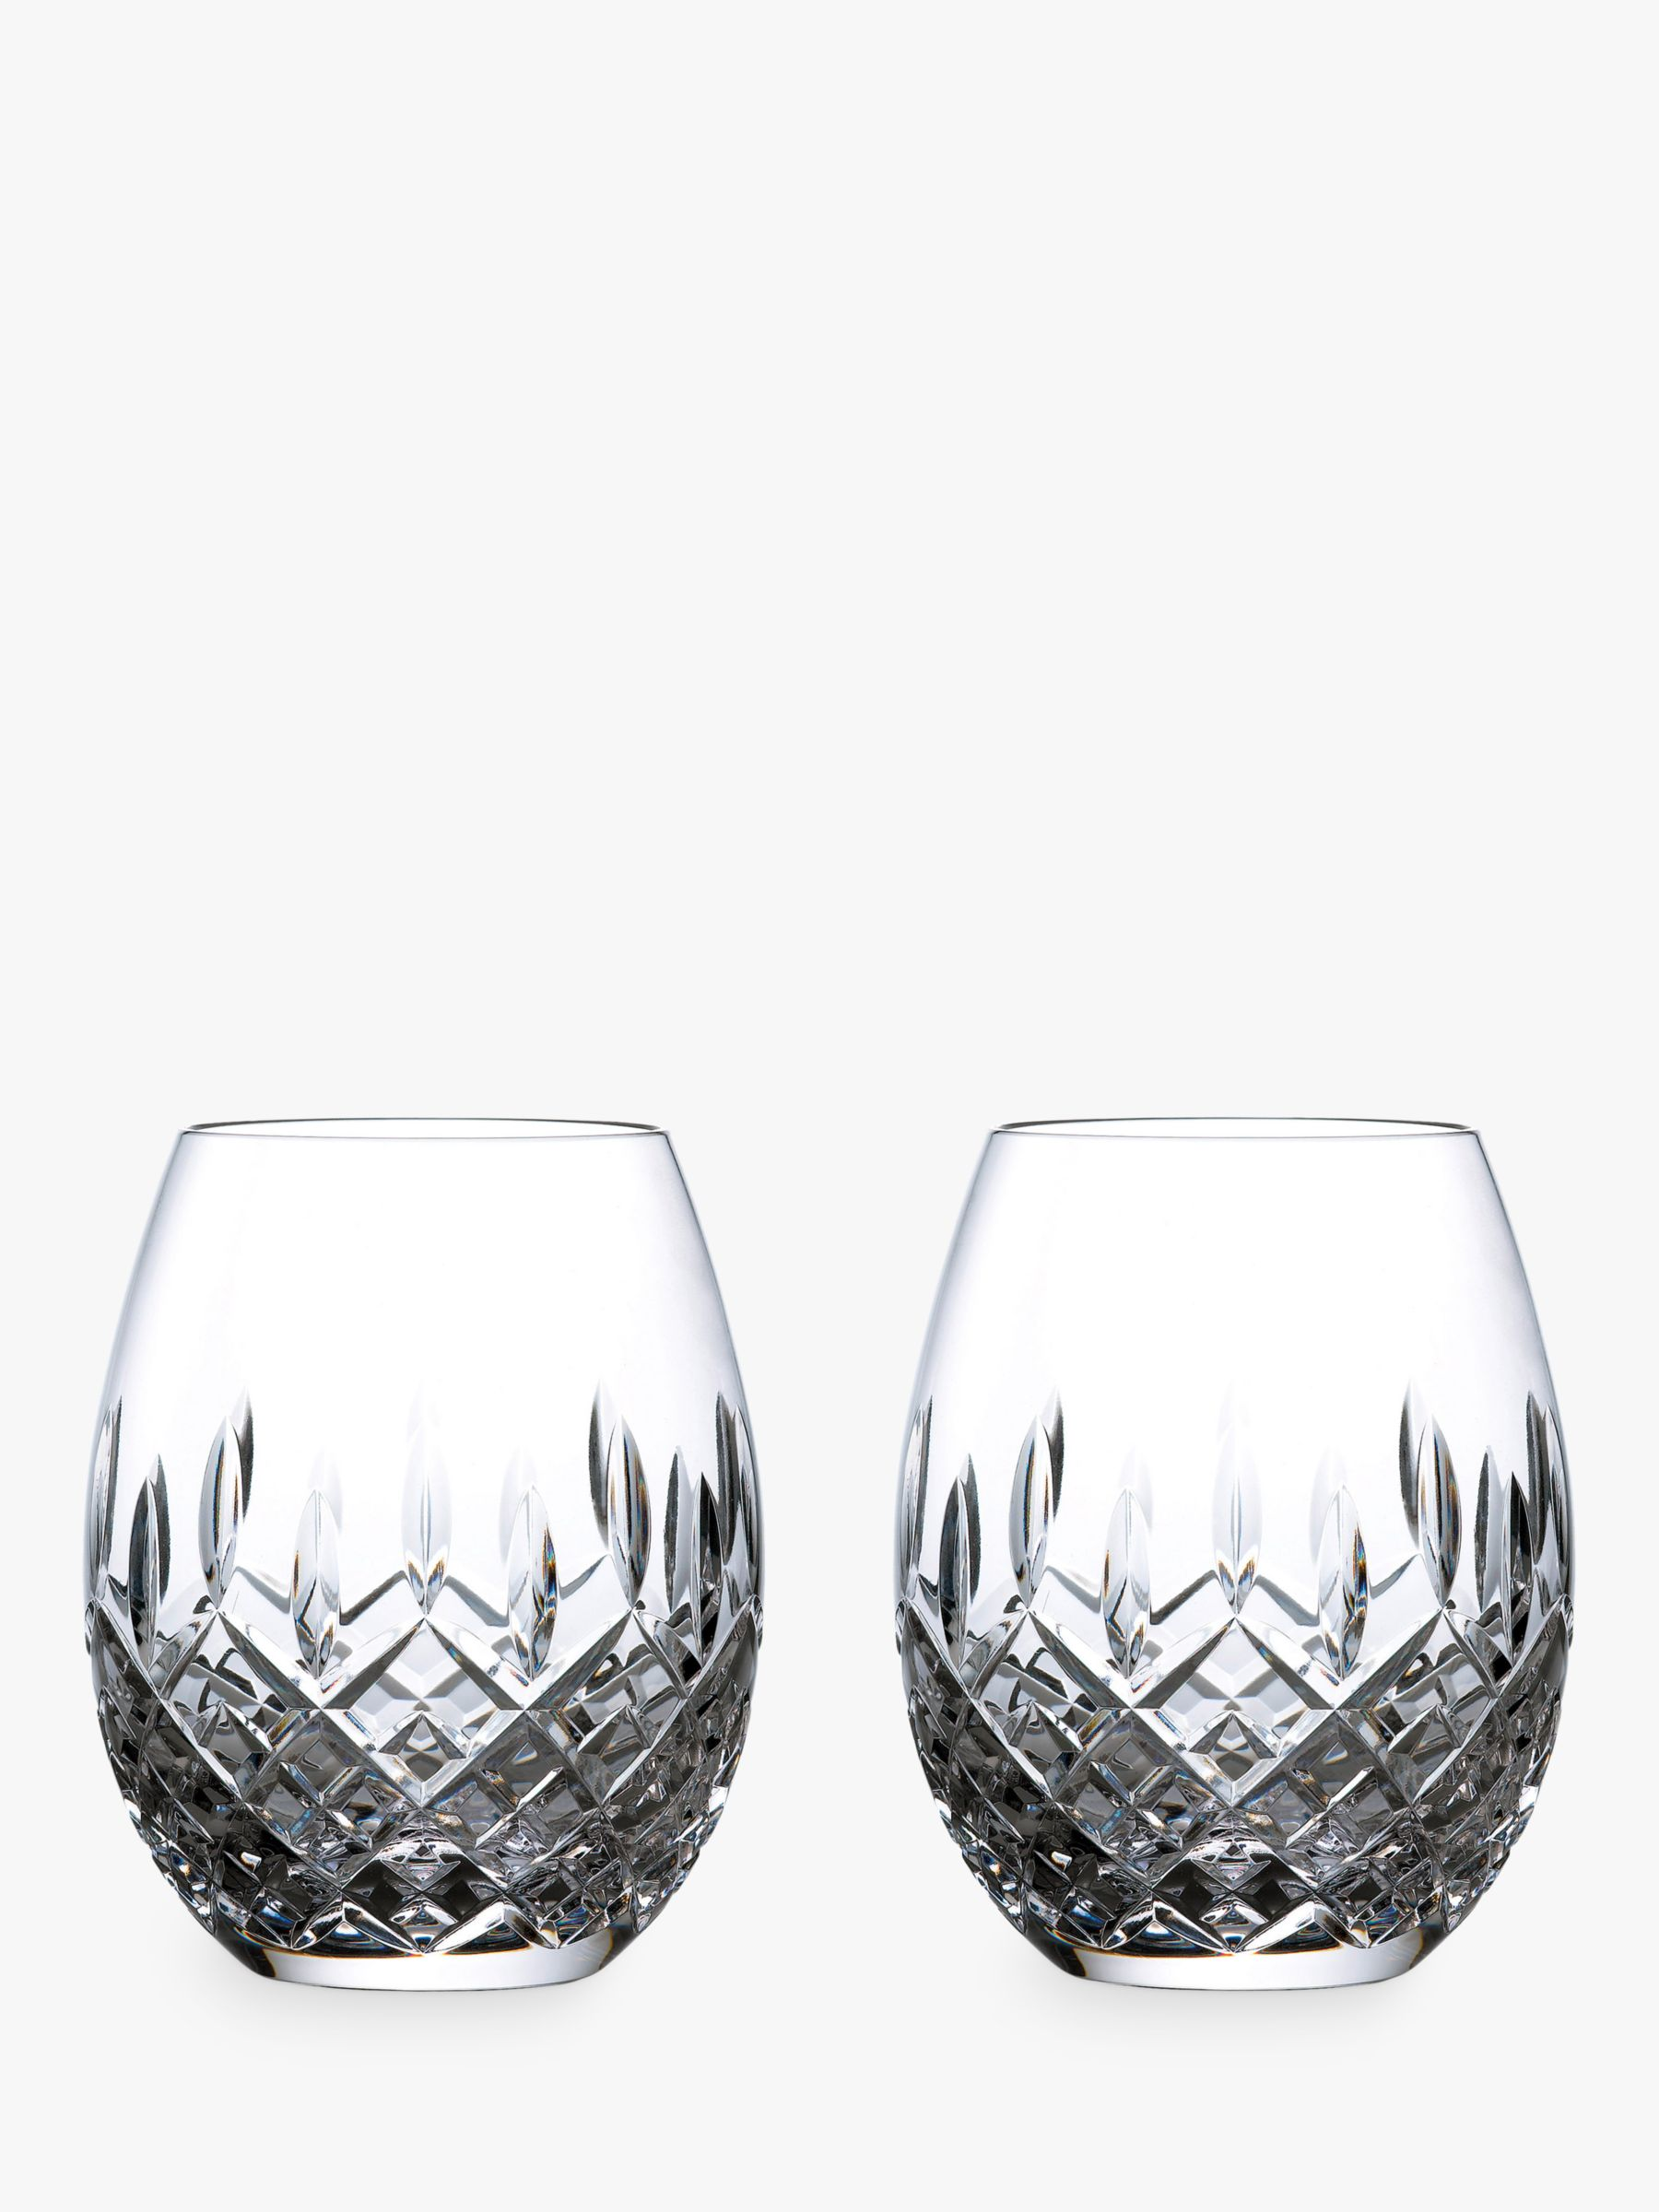 Royal Doulton Royal Doulton R&D Collection Highclere Crystal Rum Glasses, Set of 2, 470ml, Clear